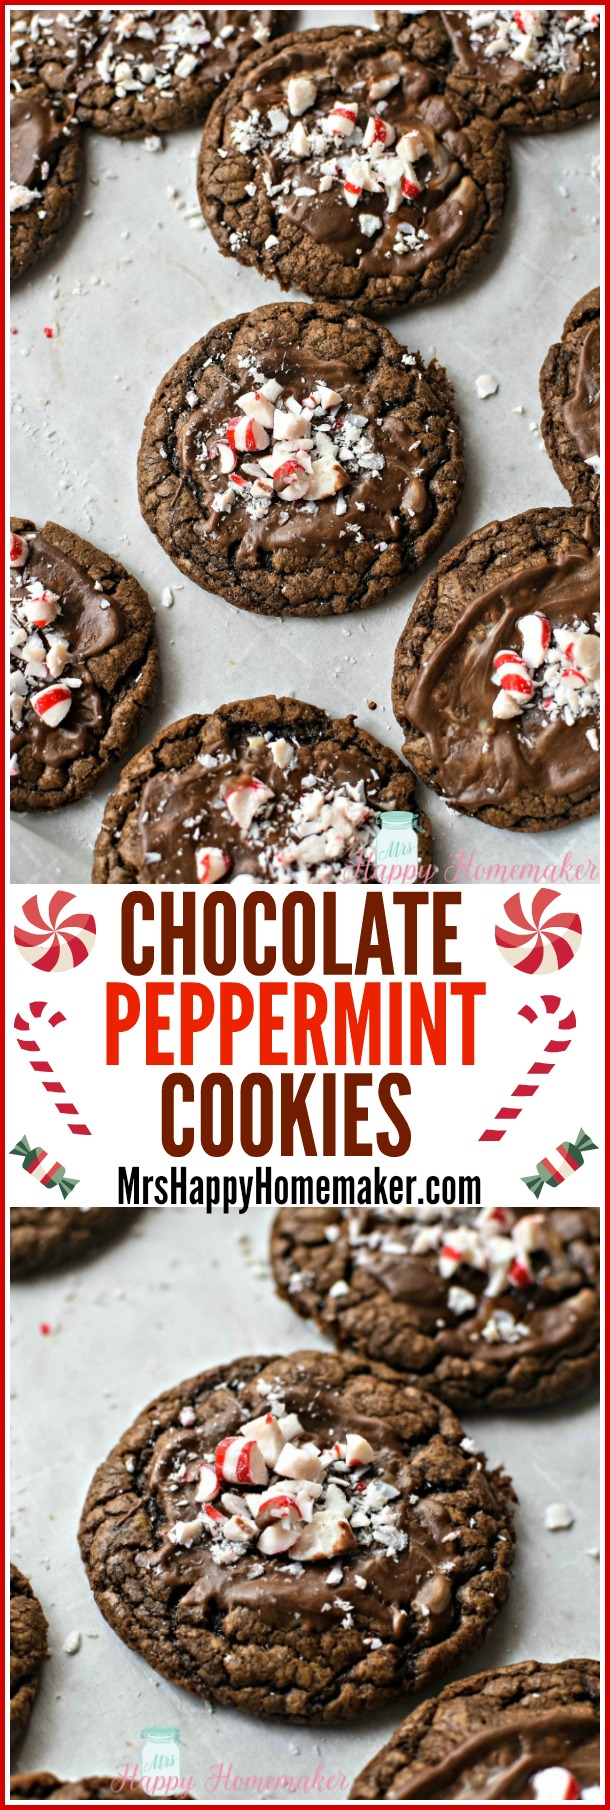 Chocolate Peppermint Cookies | MrsHappyHomemaker.com